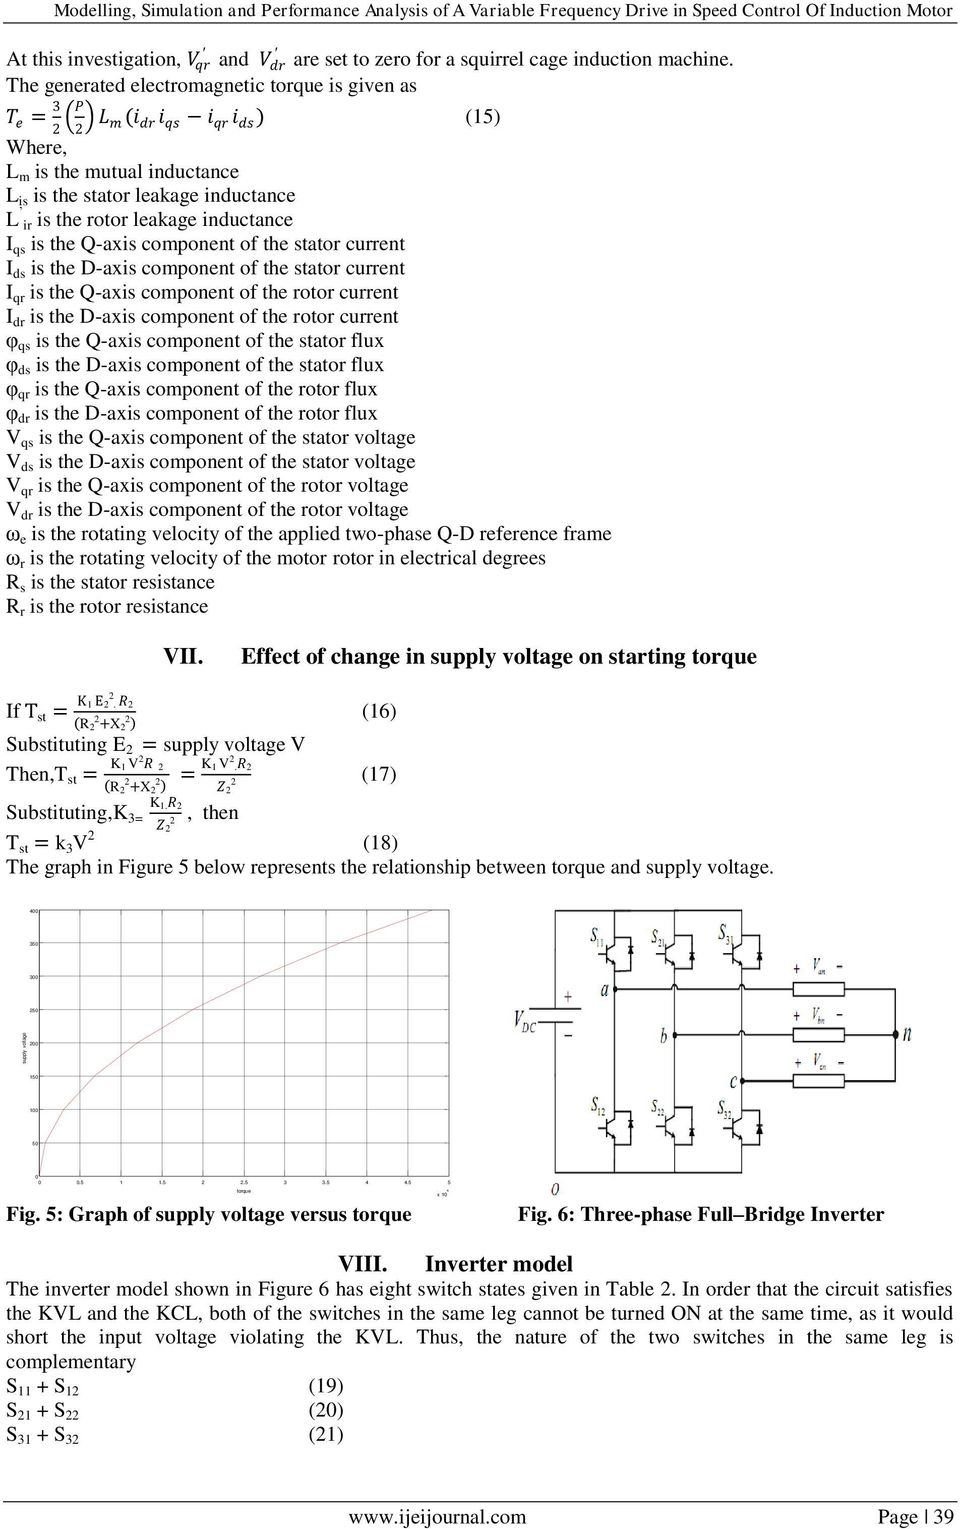 Modelling, Simulation and Performance Analysis of A Variable